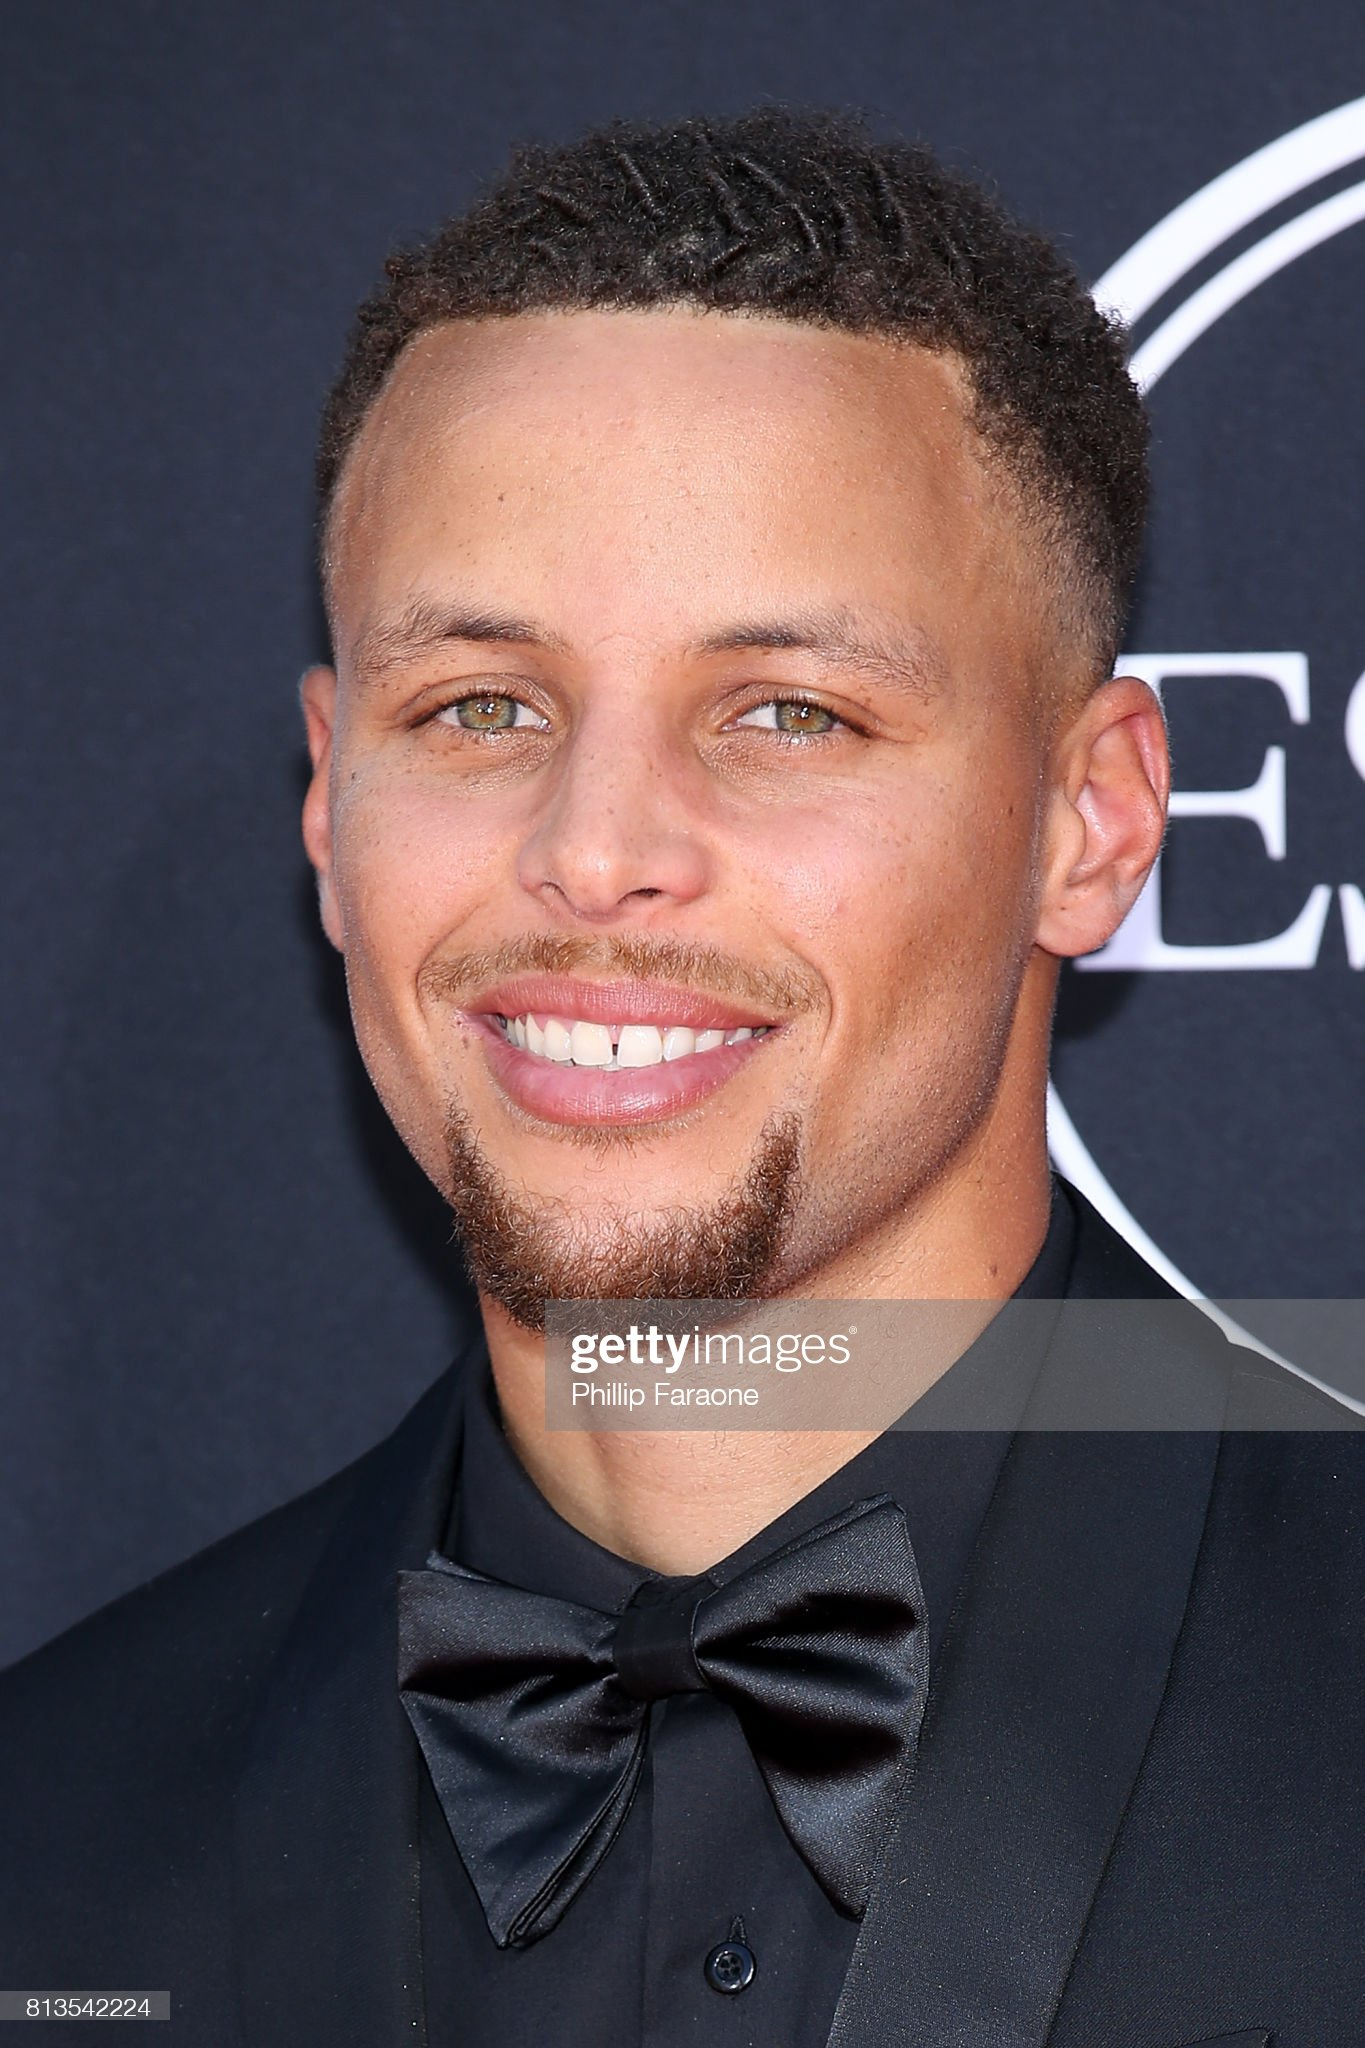 Hazel eyes - Personas famosas con los ojos de color AVELLANA Stephen-curry-attends-the-2017-espys-at-microsoft-theater-on-july-12-picture-id813542224?s=2048x2048